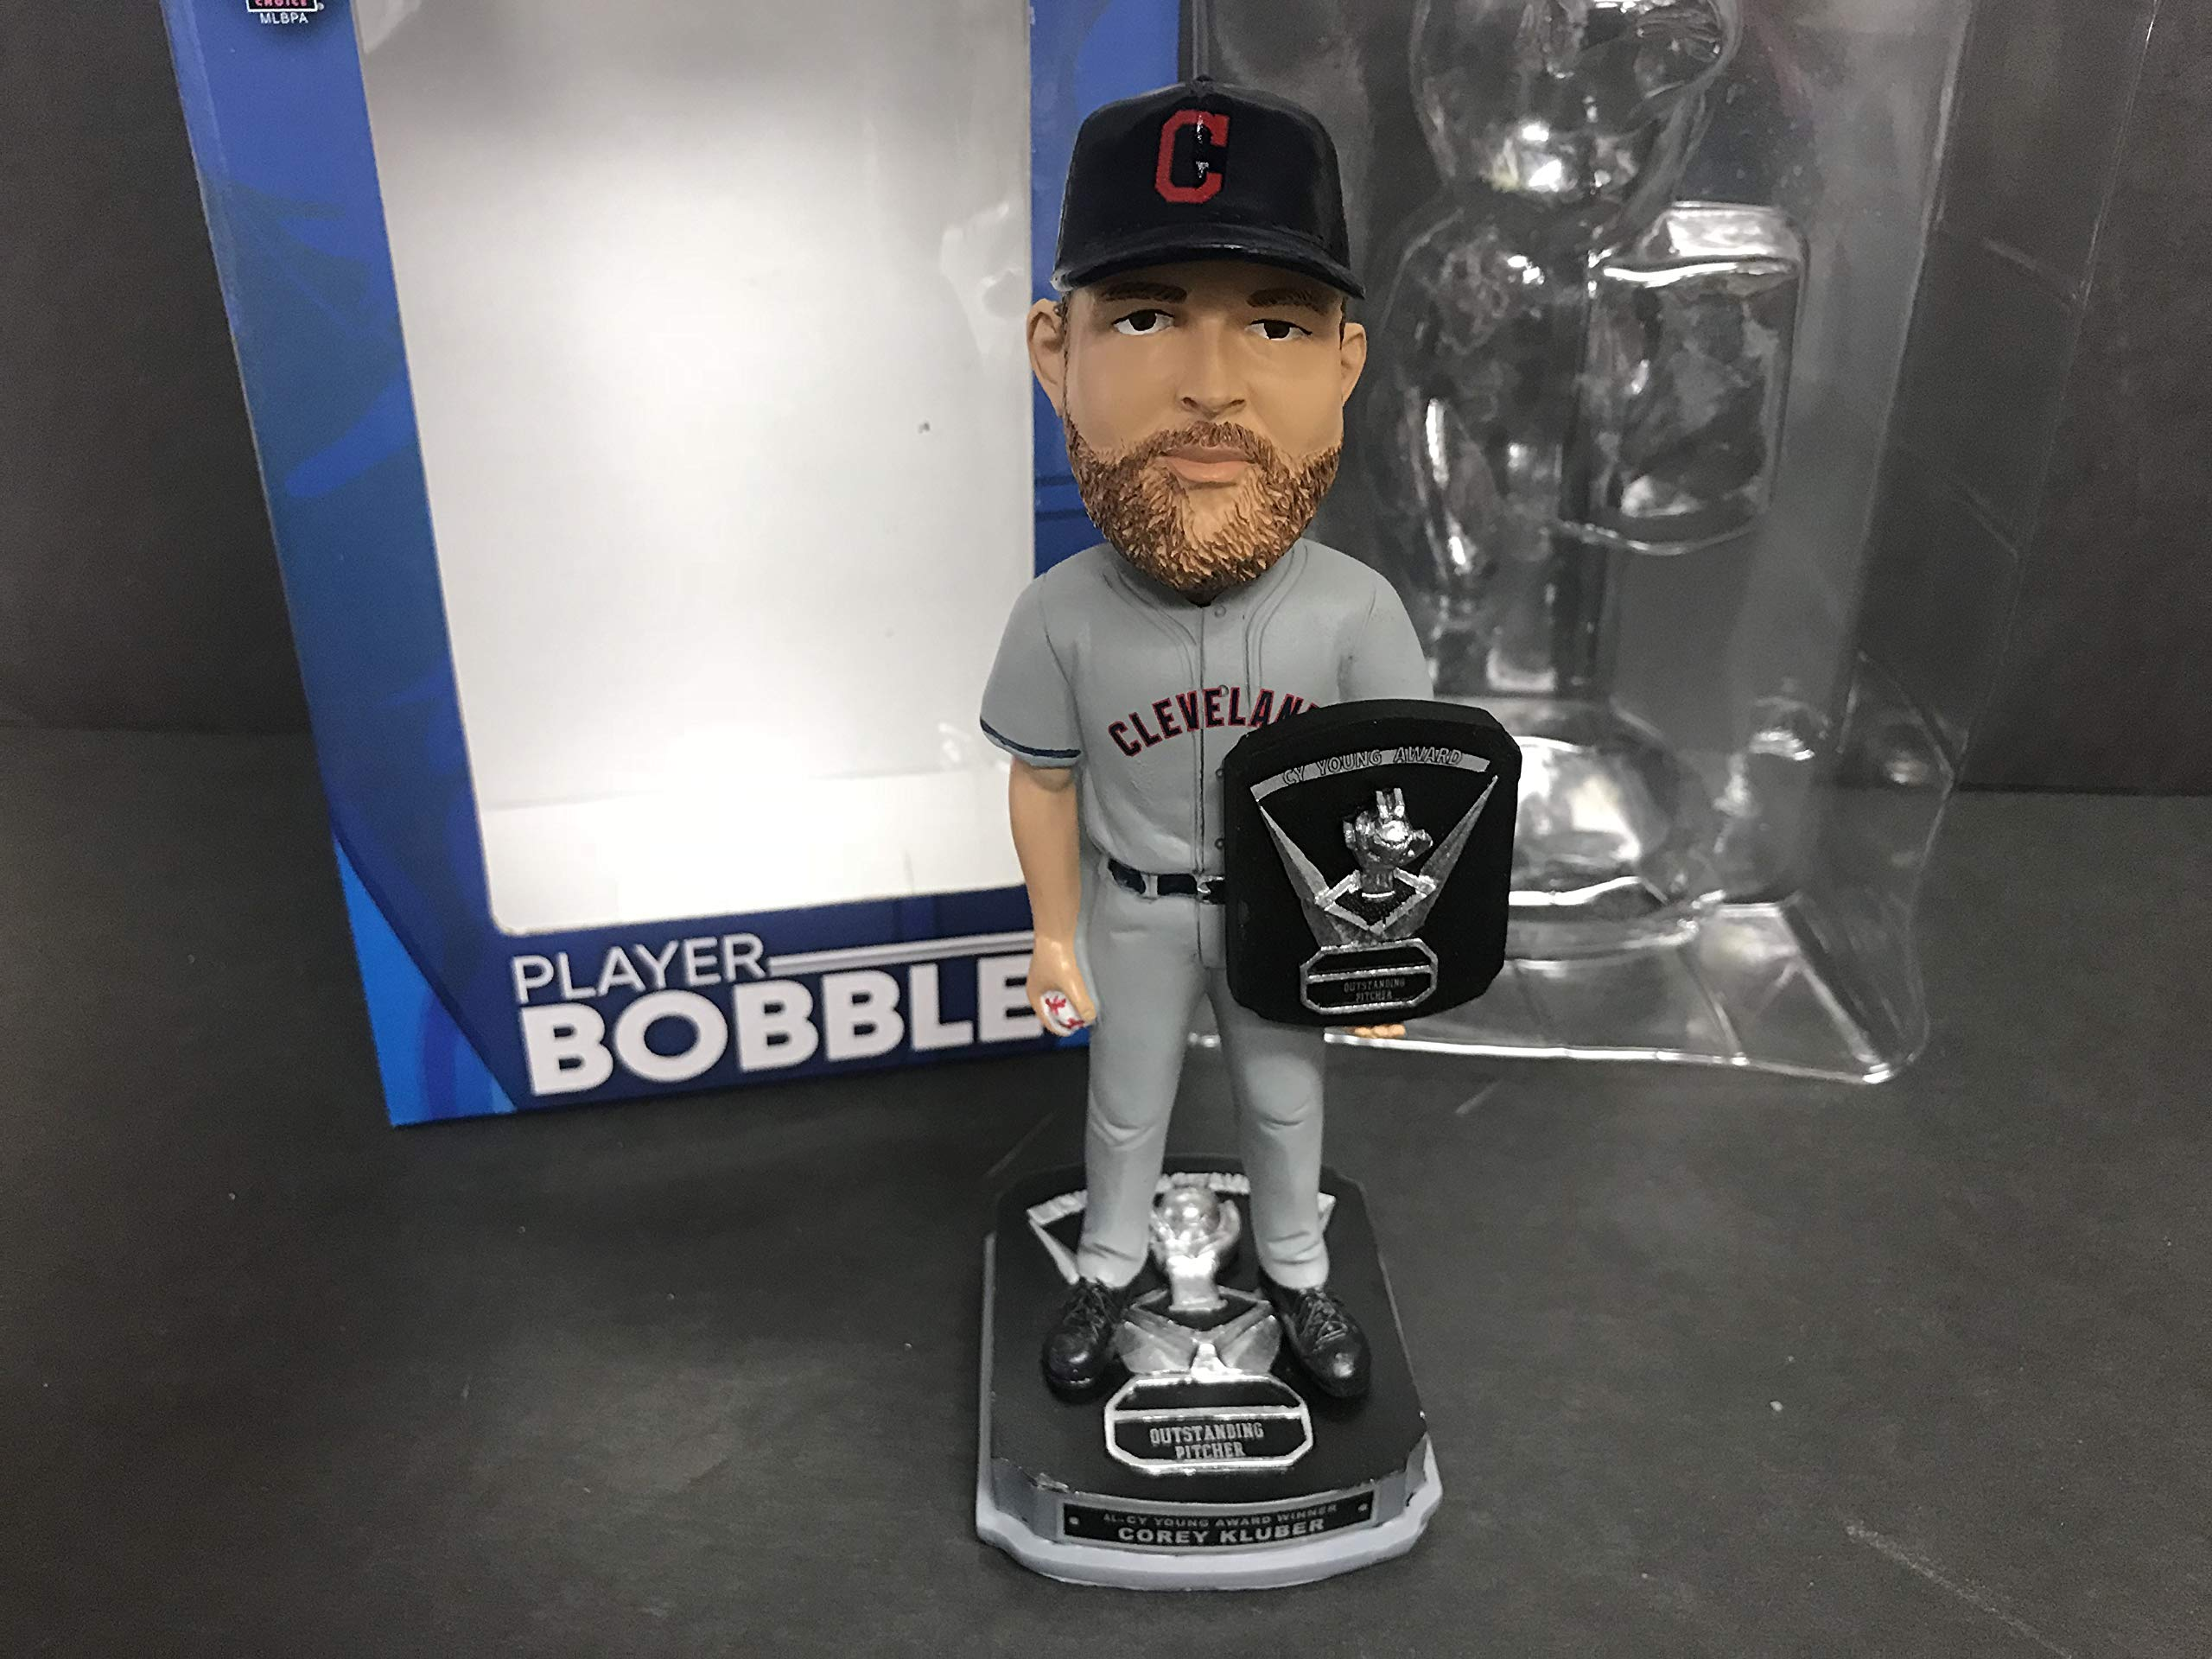 Corey Kluber 2017 CY YOUNG AWARD WINNER Cleveland Indians Limited Edition Bobble Bobblehead